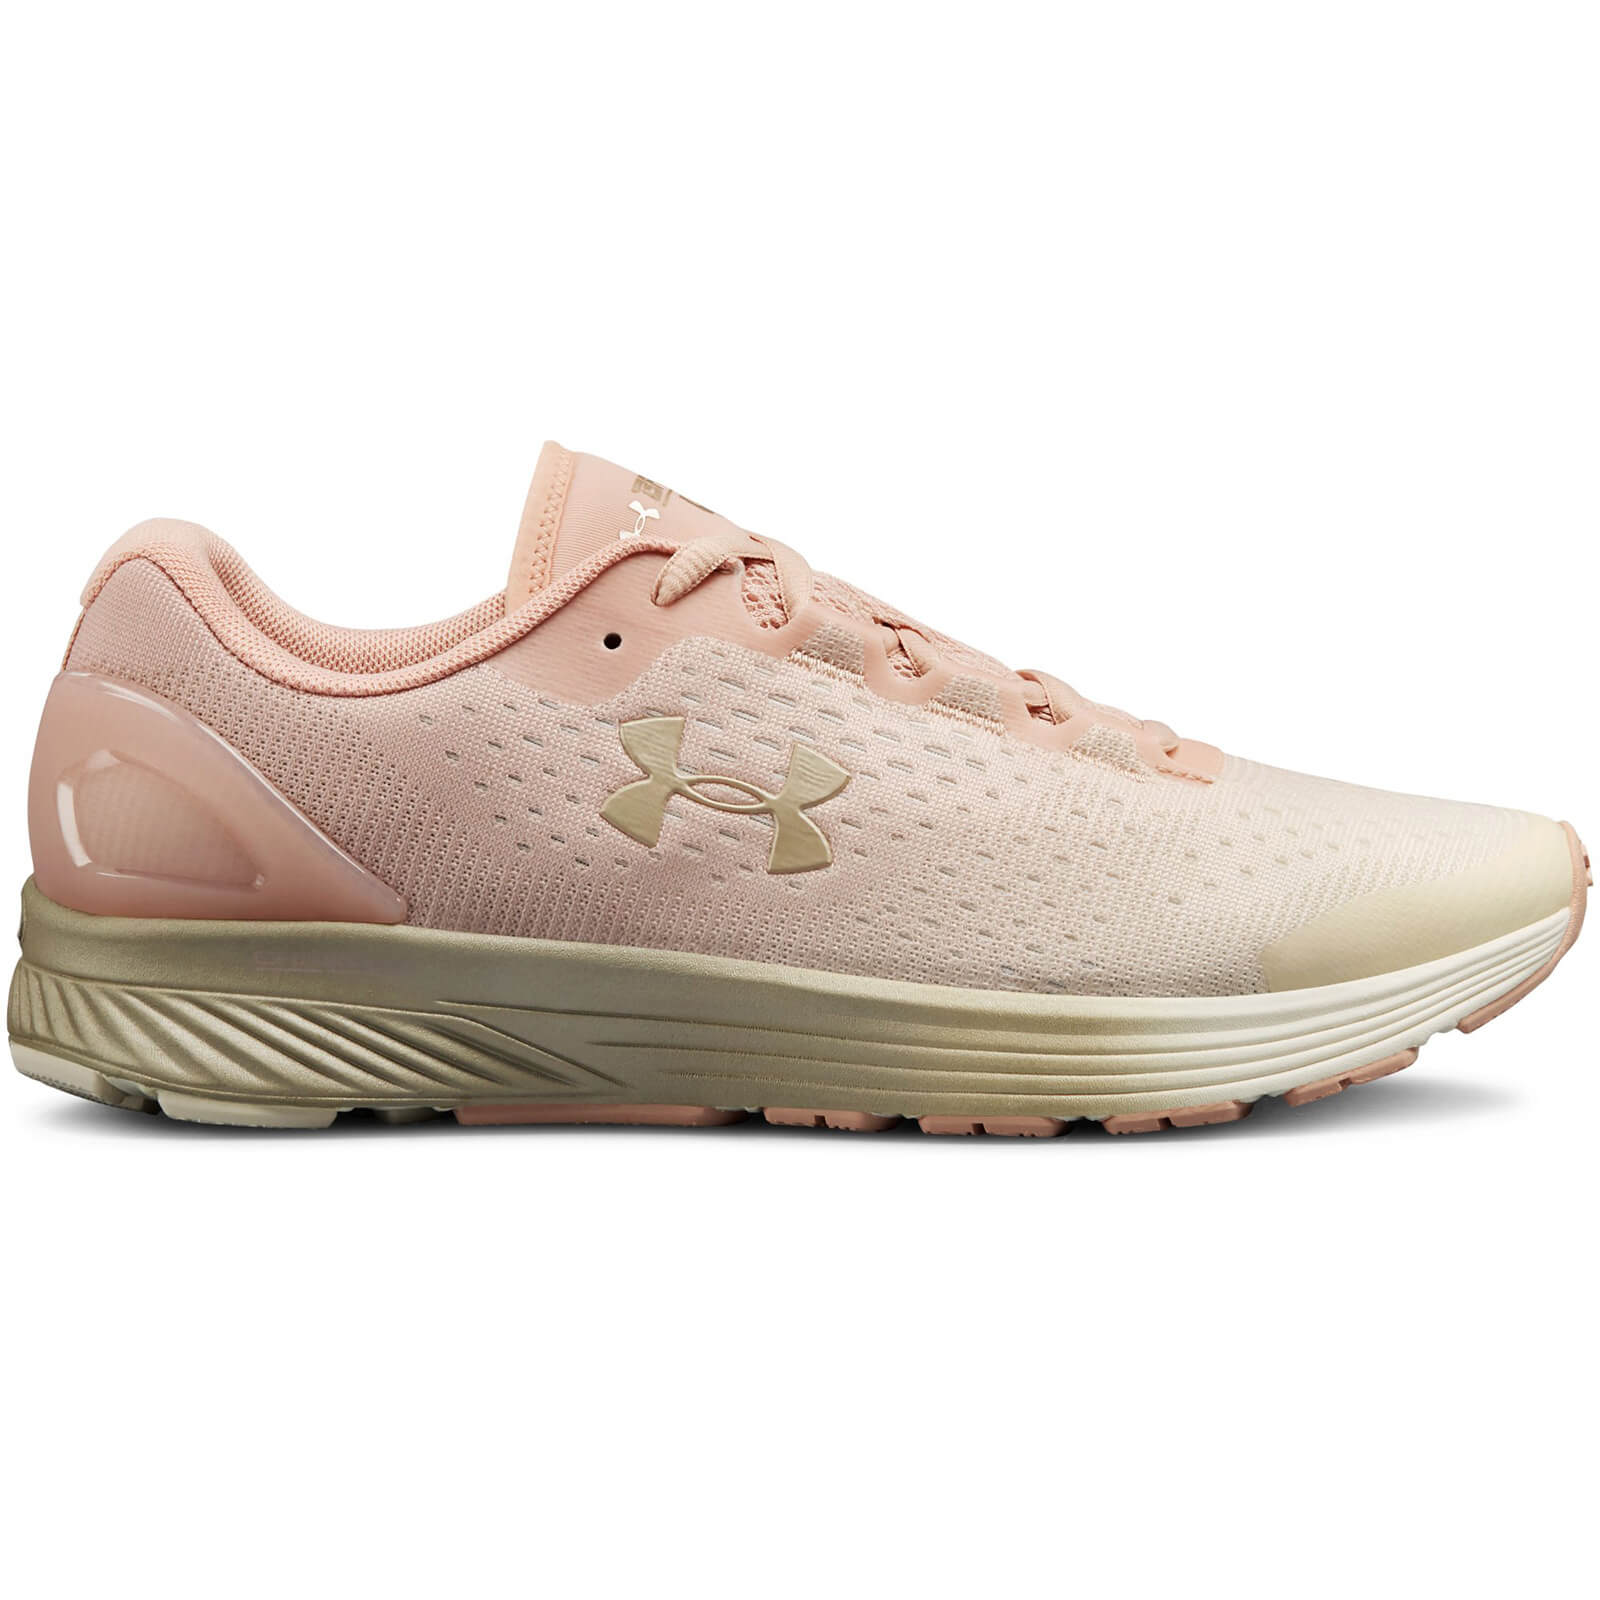 Under Armour Women s Charged Bandit 4 Running Shoes - Pink ... d43ca75c3